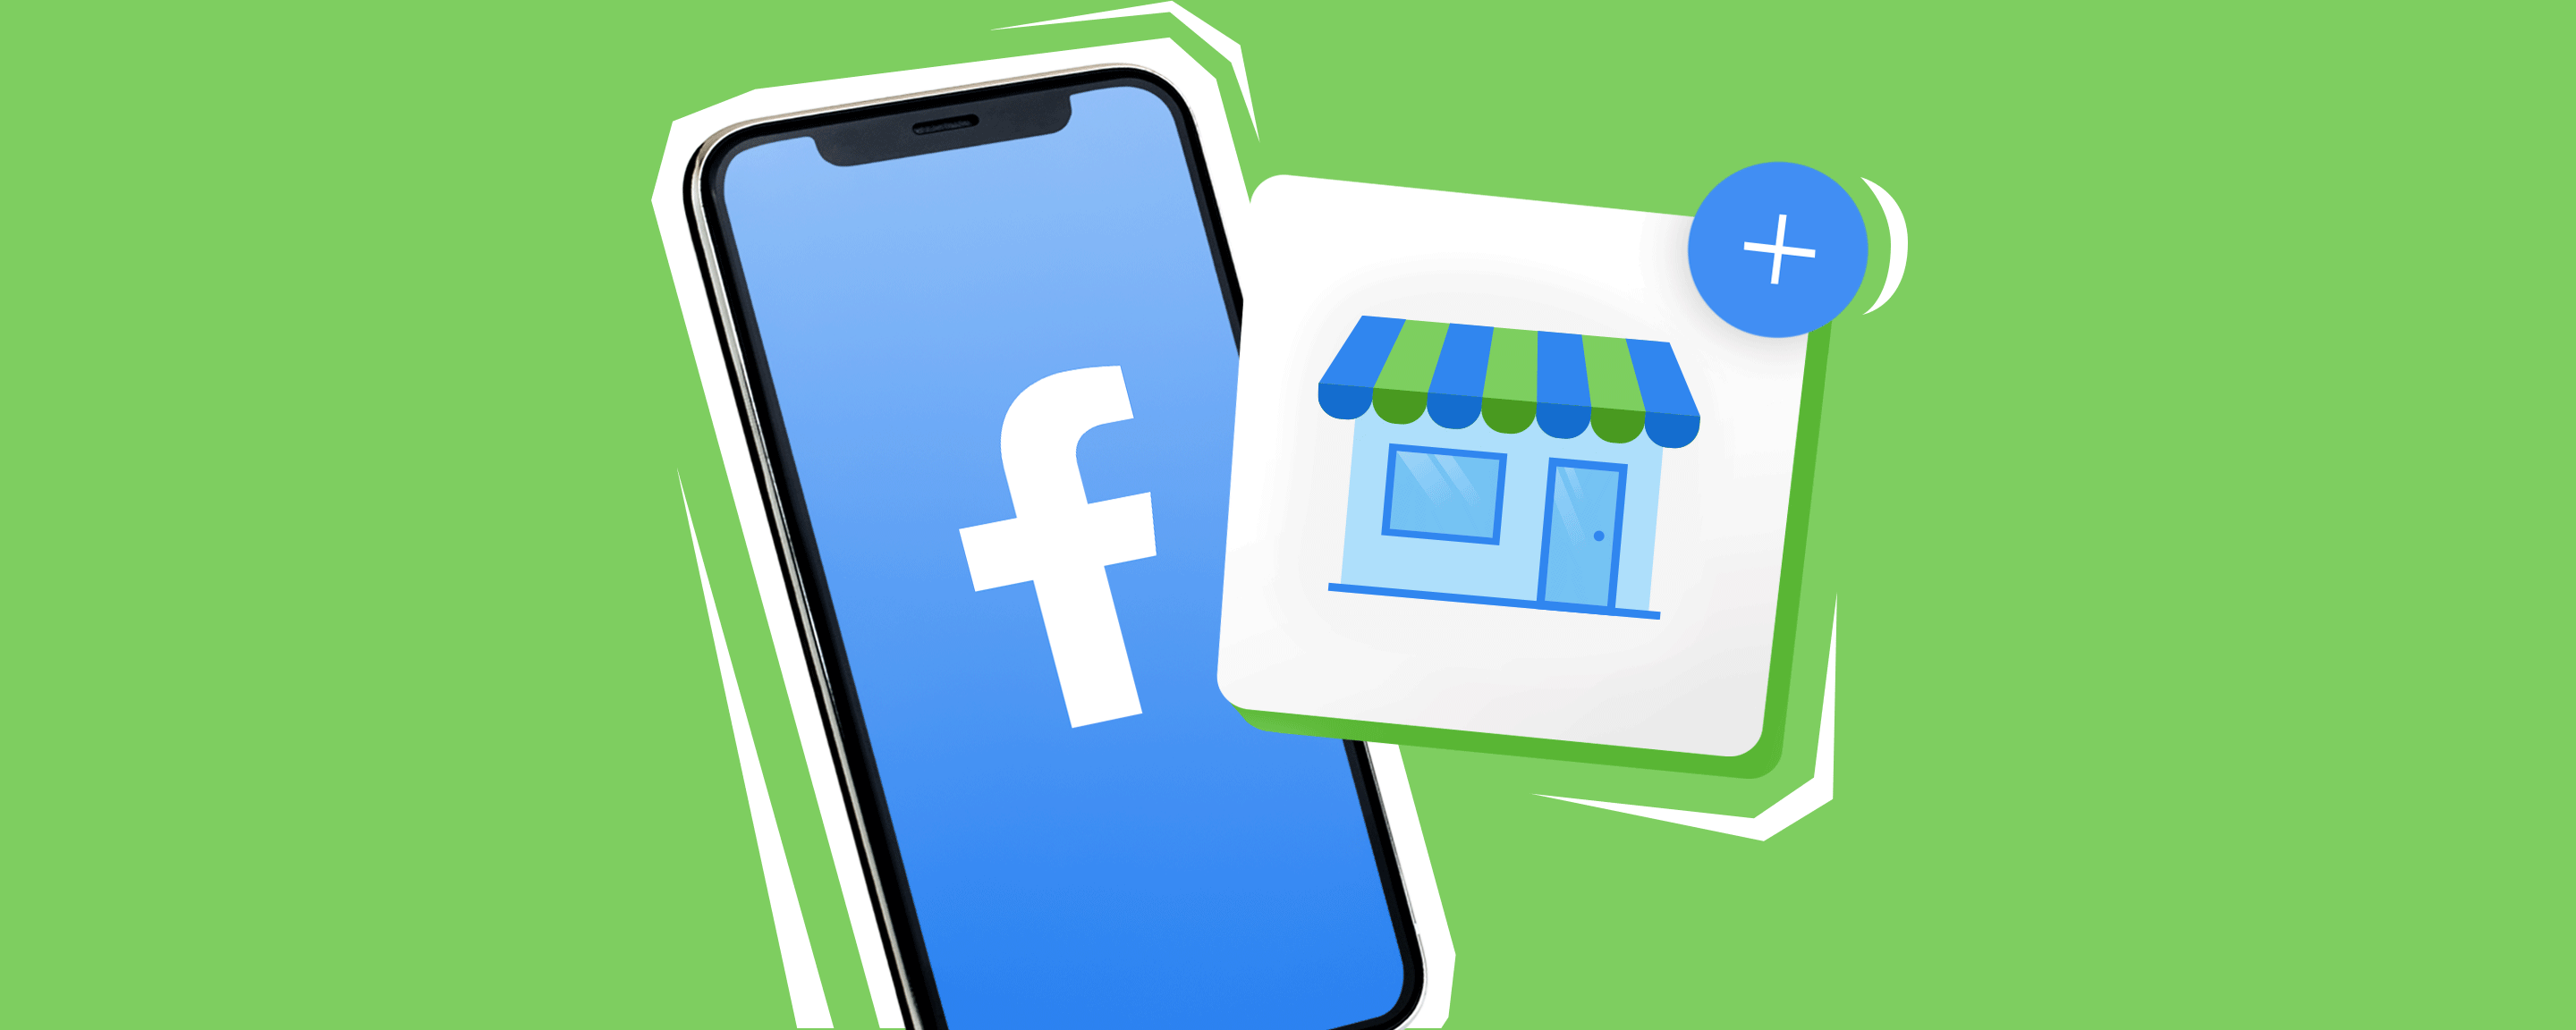 How Does Facebook Work for Small Businesses